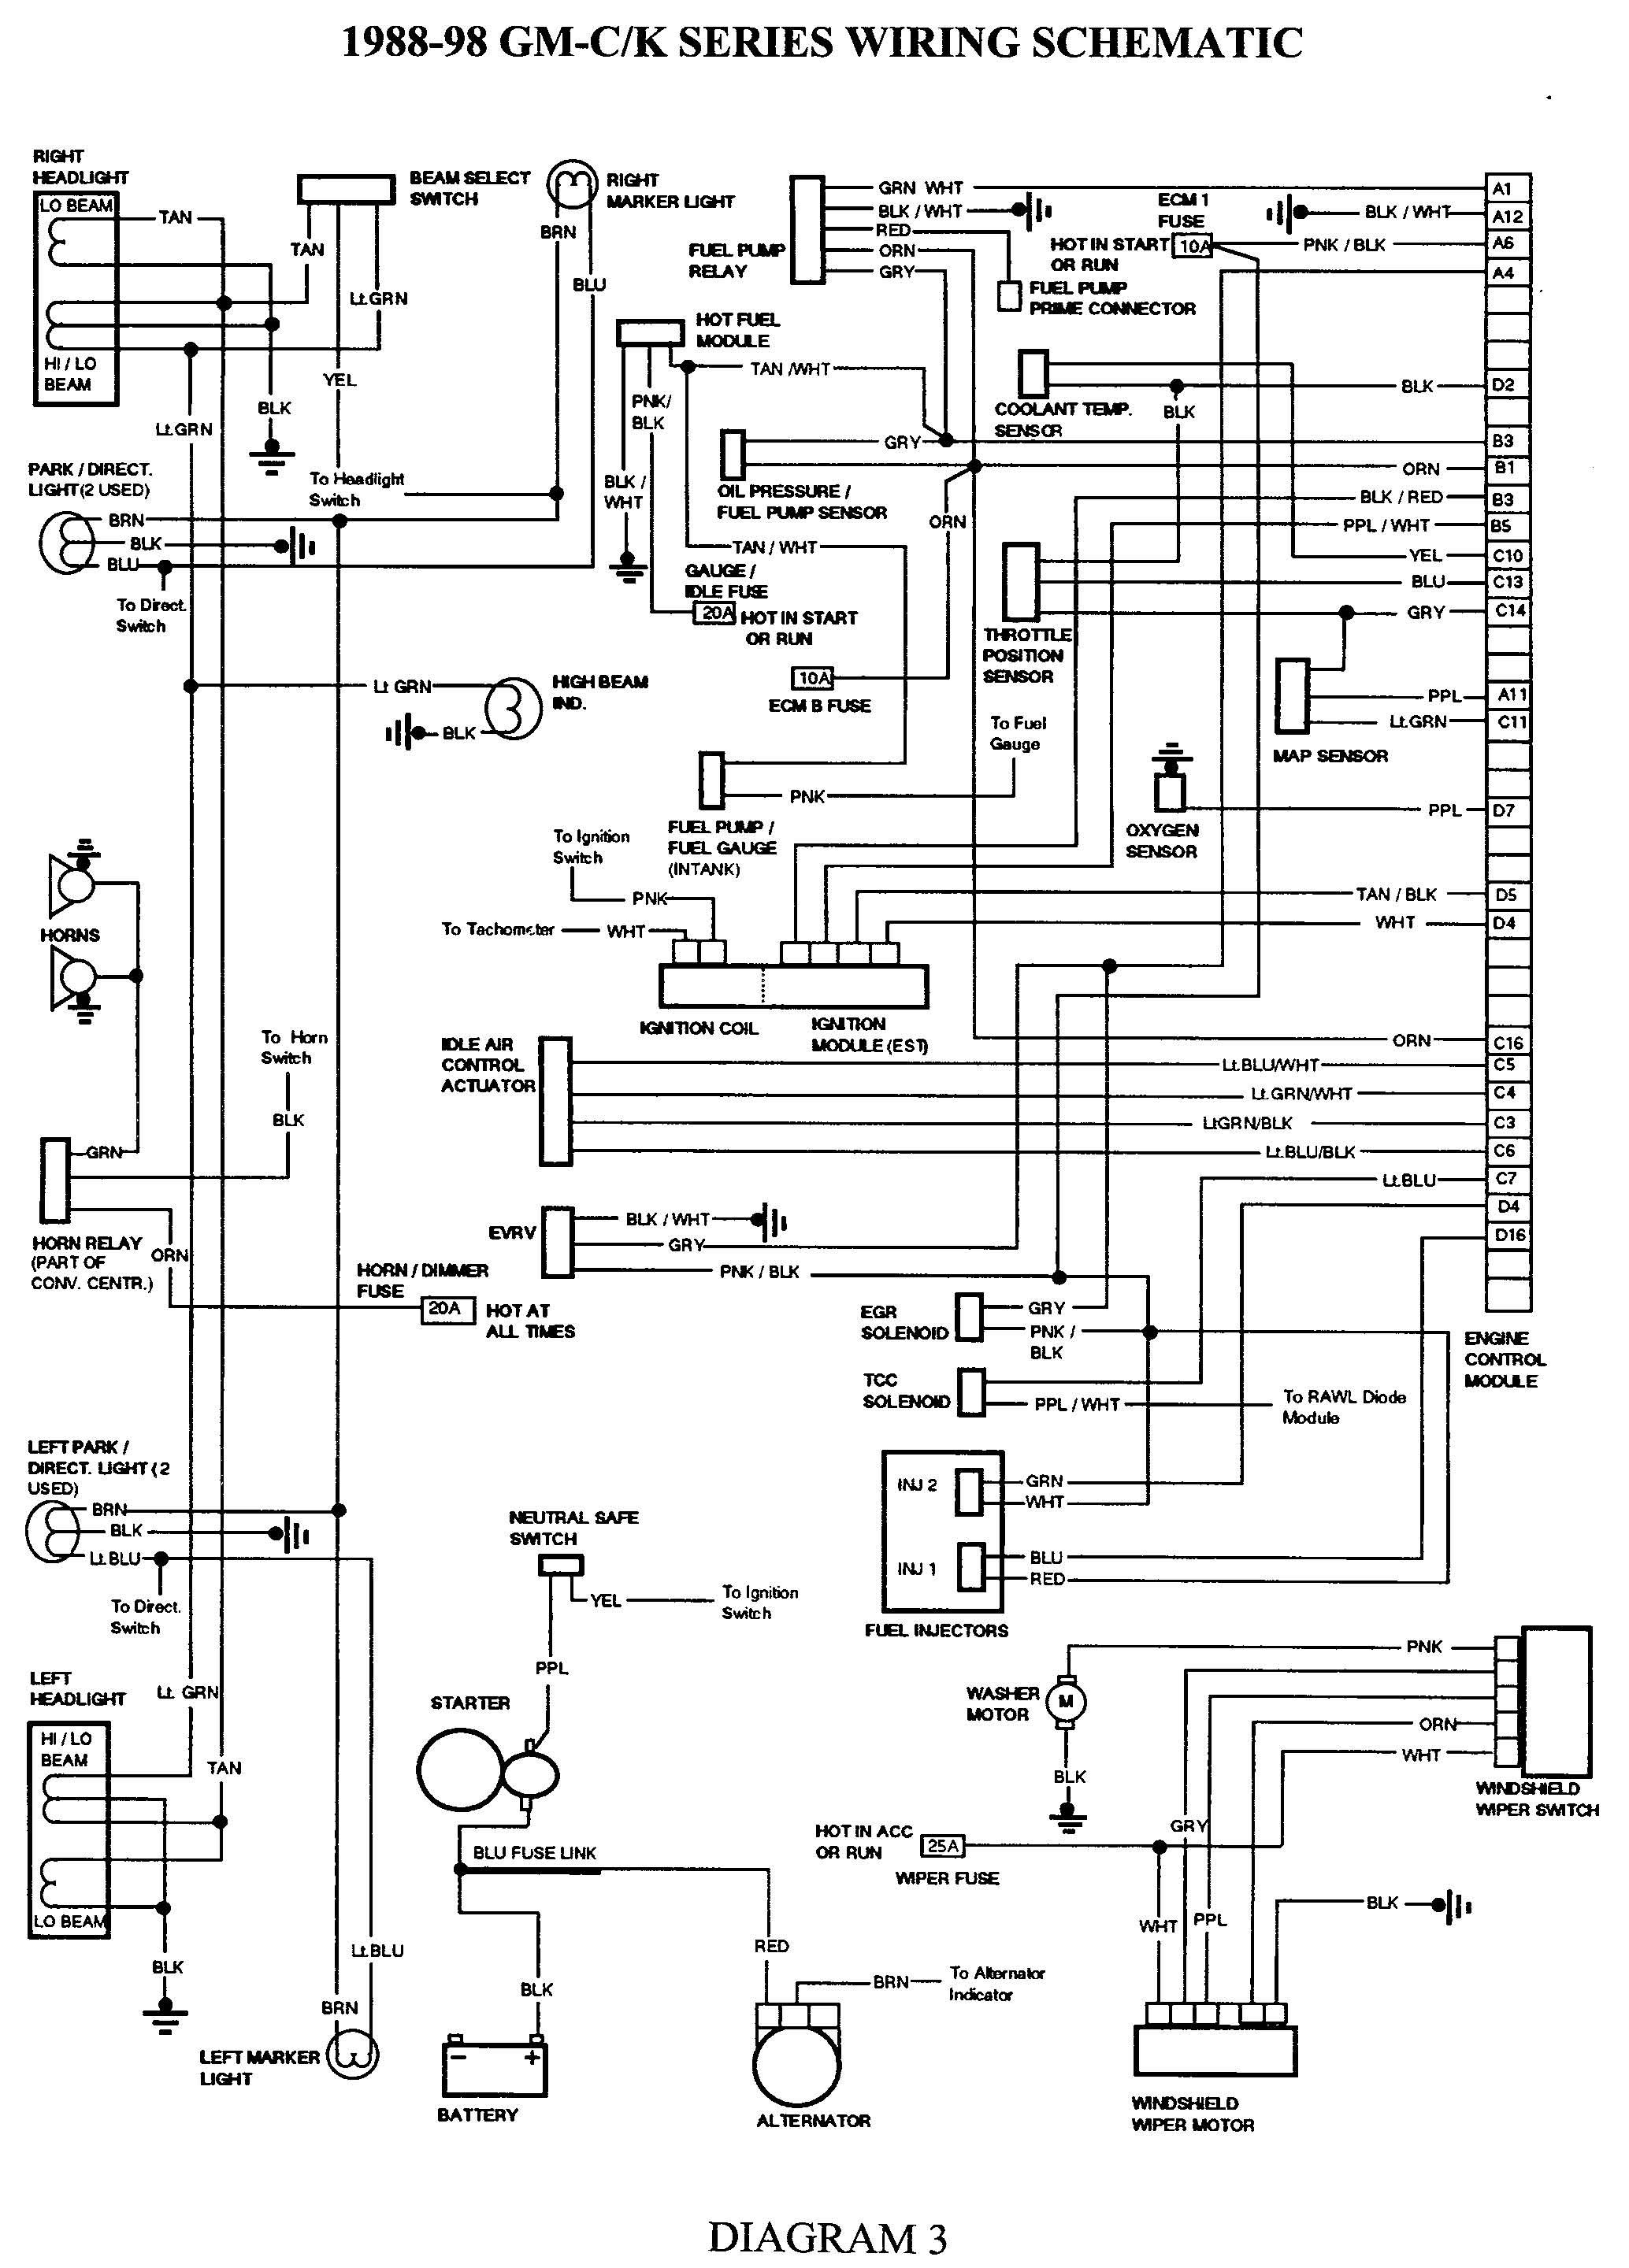 gmc truck wiring diagrams on gm wiring harness diagram 88 98 kc General Motors Wiring Colors gmc truck wiring diagrams on gm wiring harness diagram 88 98